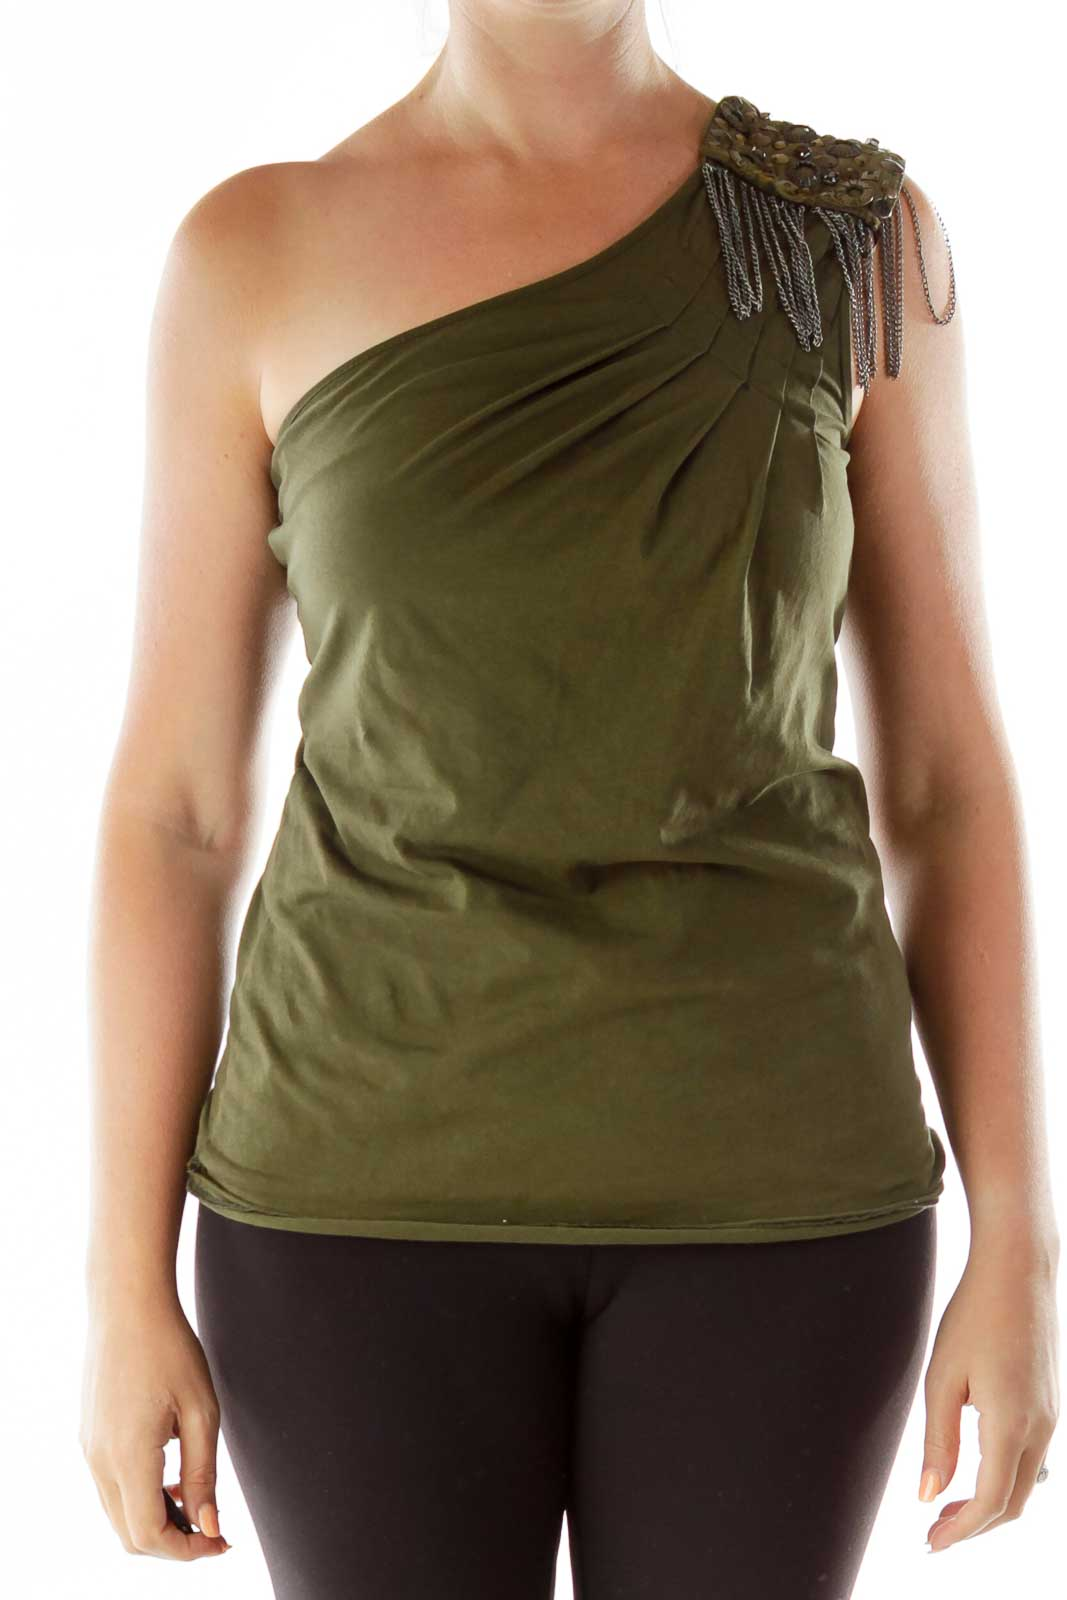 Green One-Shoulder Studded Top Front